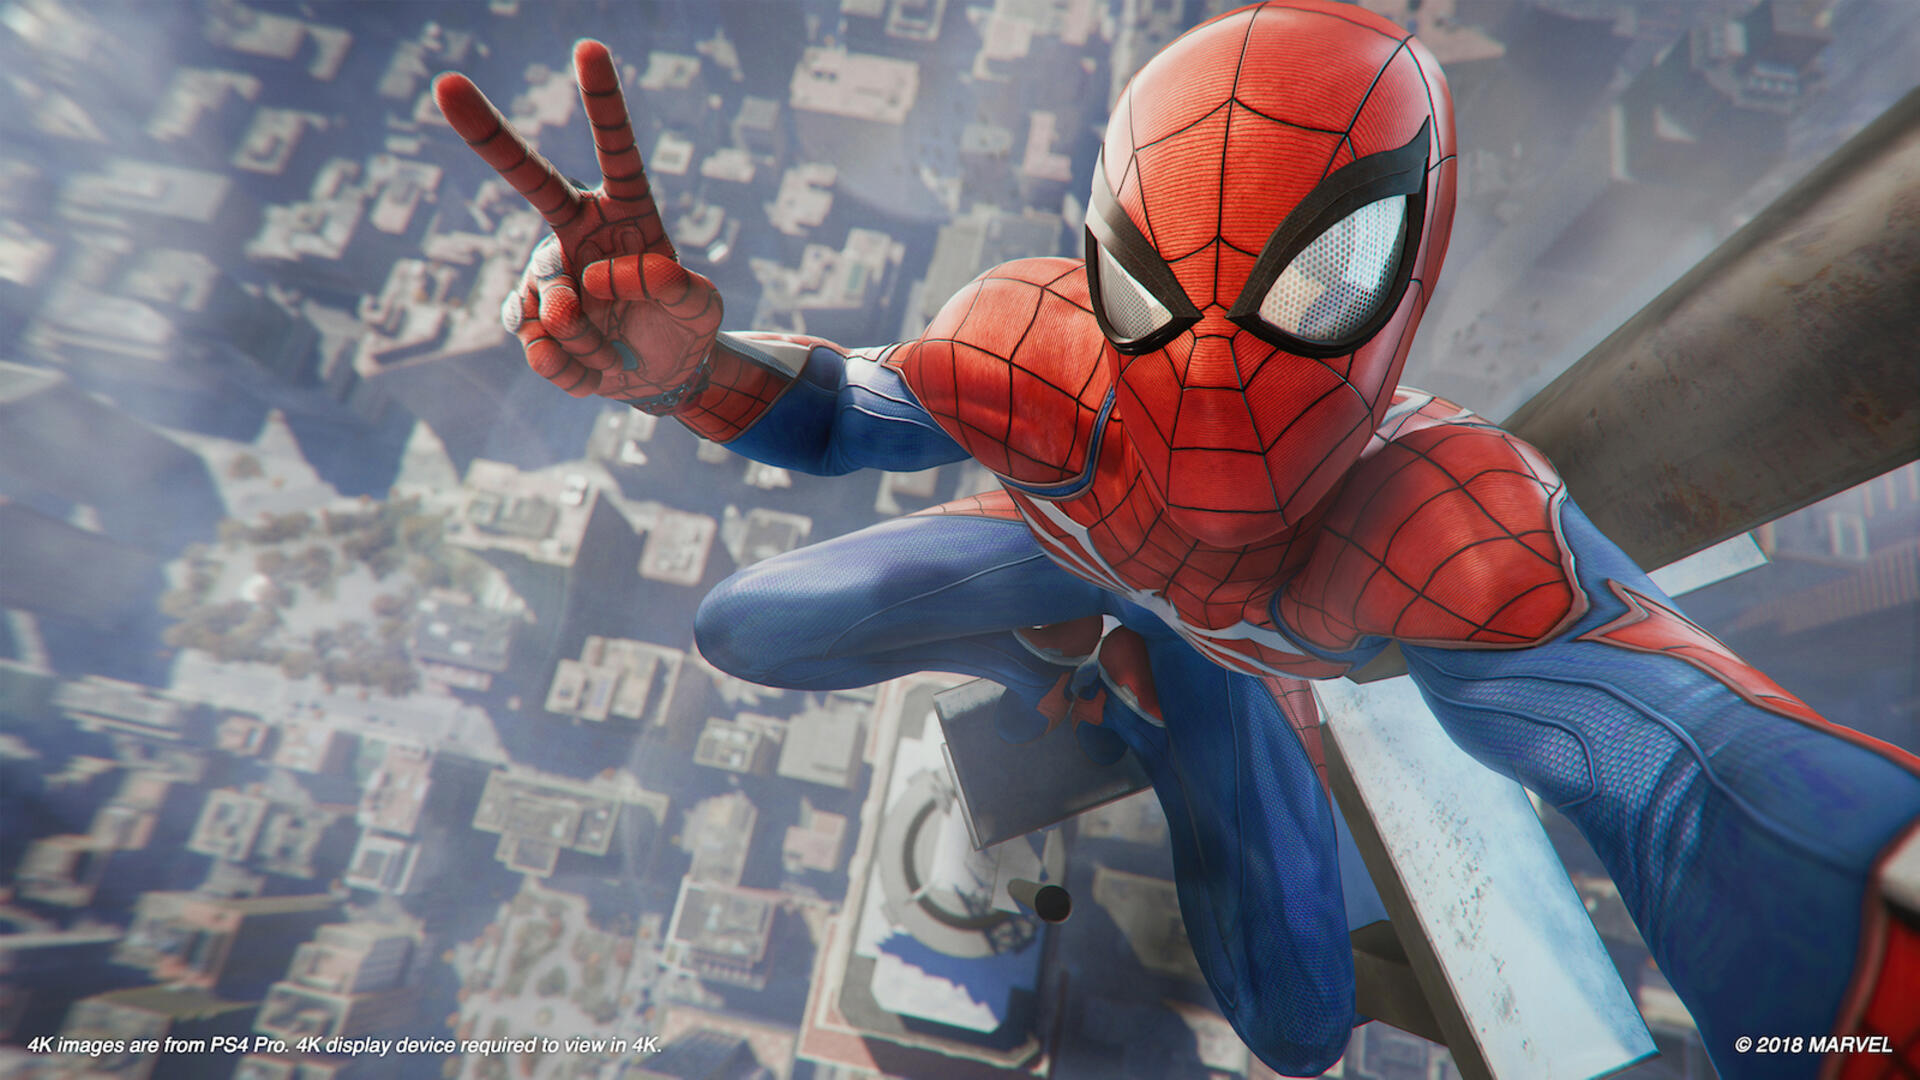 There's an Awesome Seinfeld Reference in Spider Man PS4